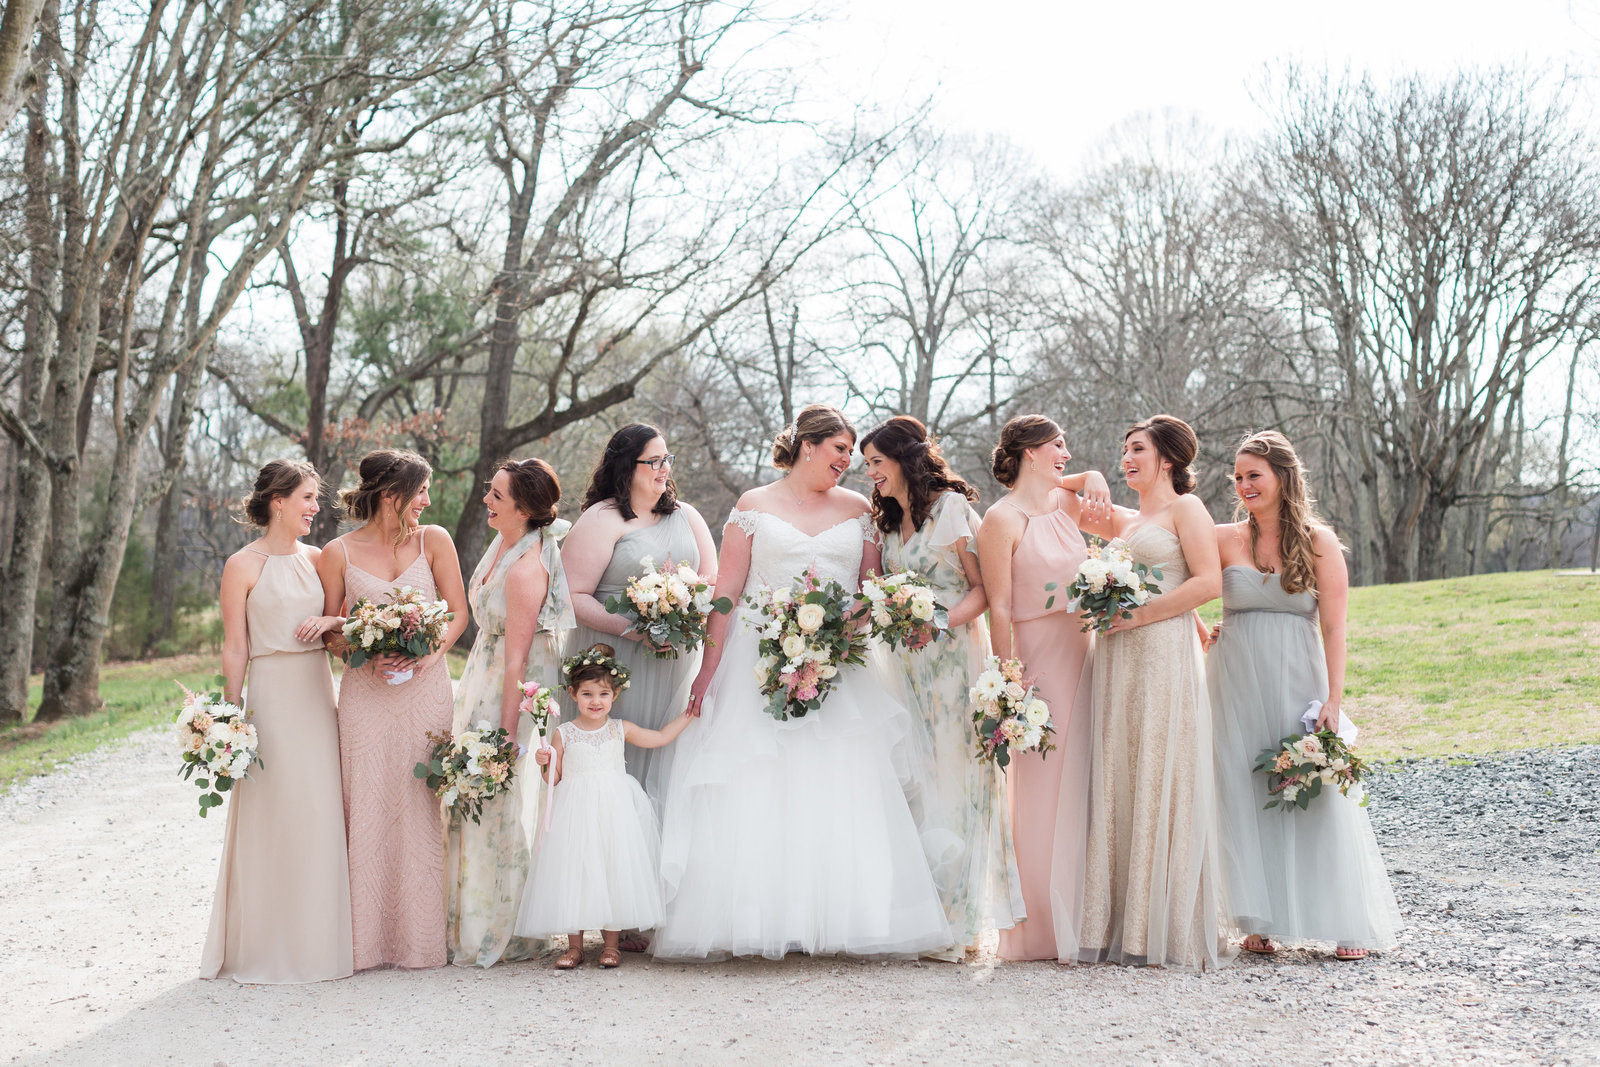 Stacy and Michael Married-Wedding Party-Samantha Laffoon Photography-69